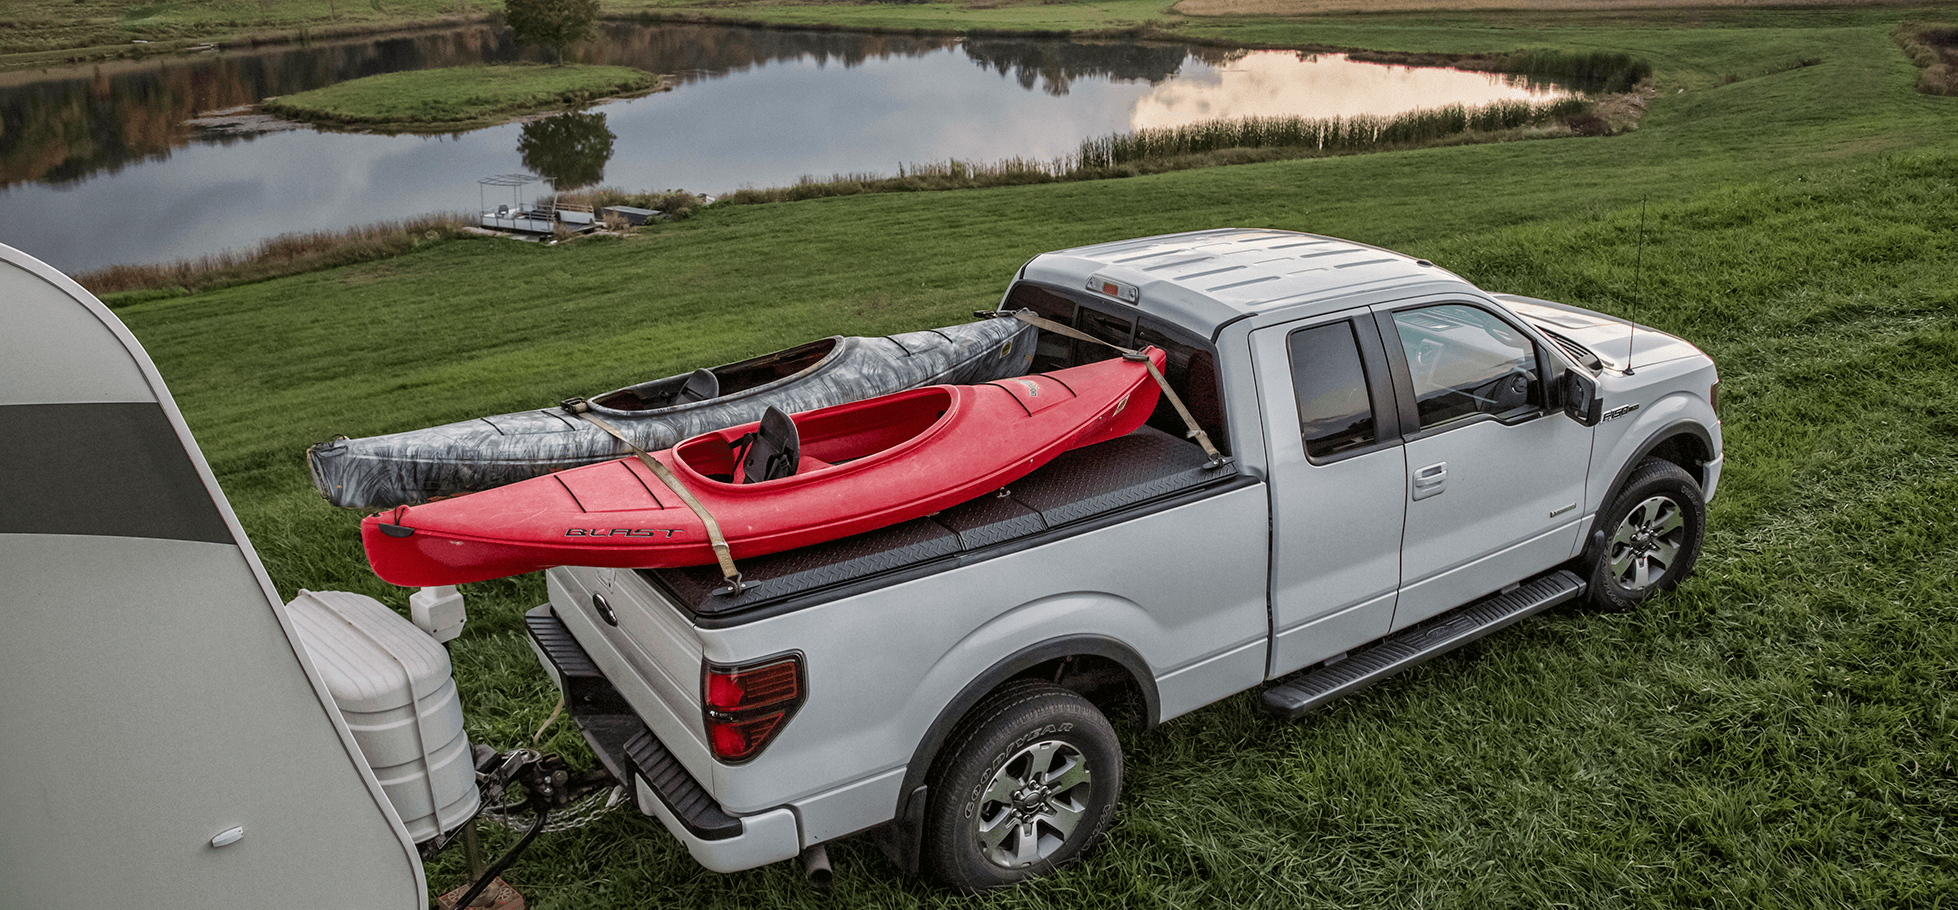 SE metal bed cover hauling two kayaks on top camping